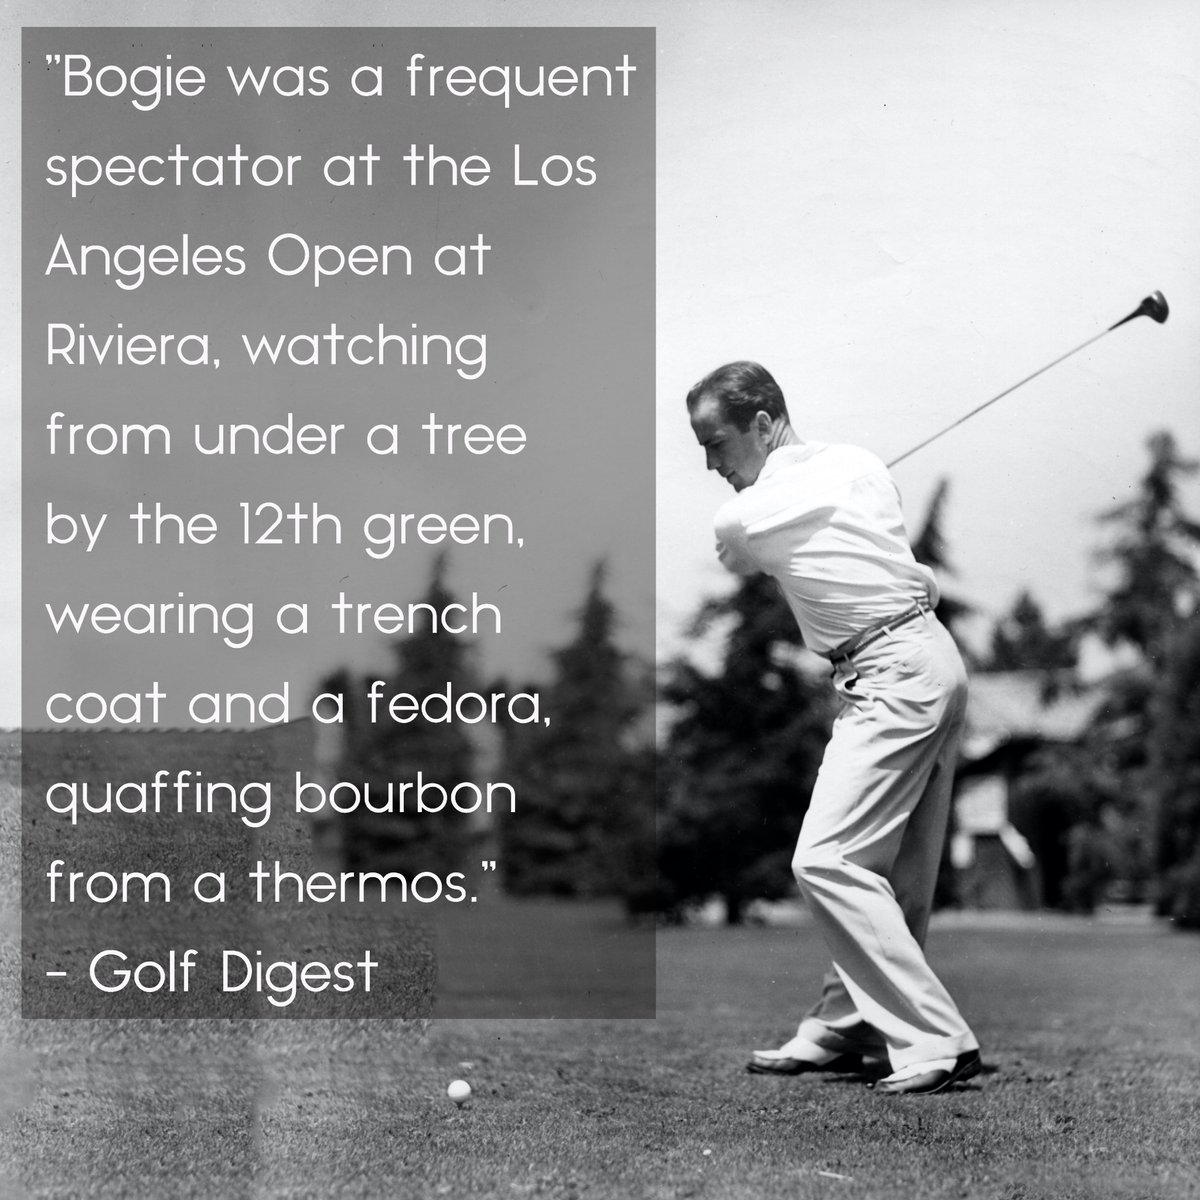 Every time the @PGATOUR plays @thegenesisinv at the Riviera Country Club in Los Angeles, we remember this great @GolfDigest quote about Humphrey Bogart ... 🤣🥃🏌🏼♂️ https://t.co/TxUp4fOKPj